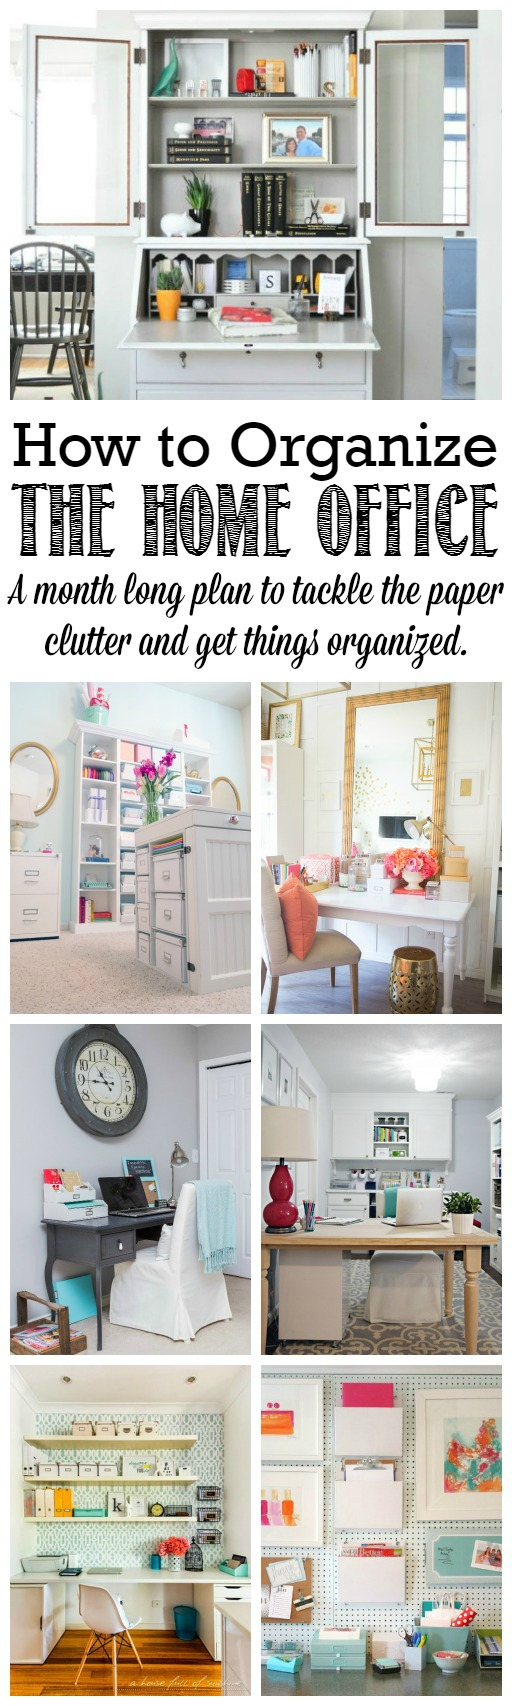 5 Images of Home Office Fall Cleaning Printables